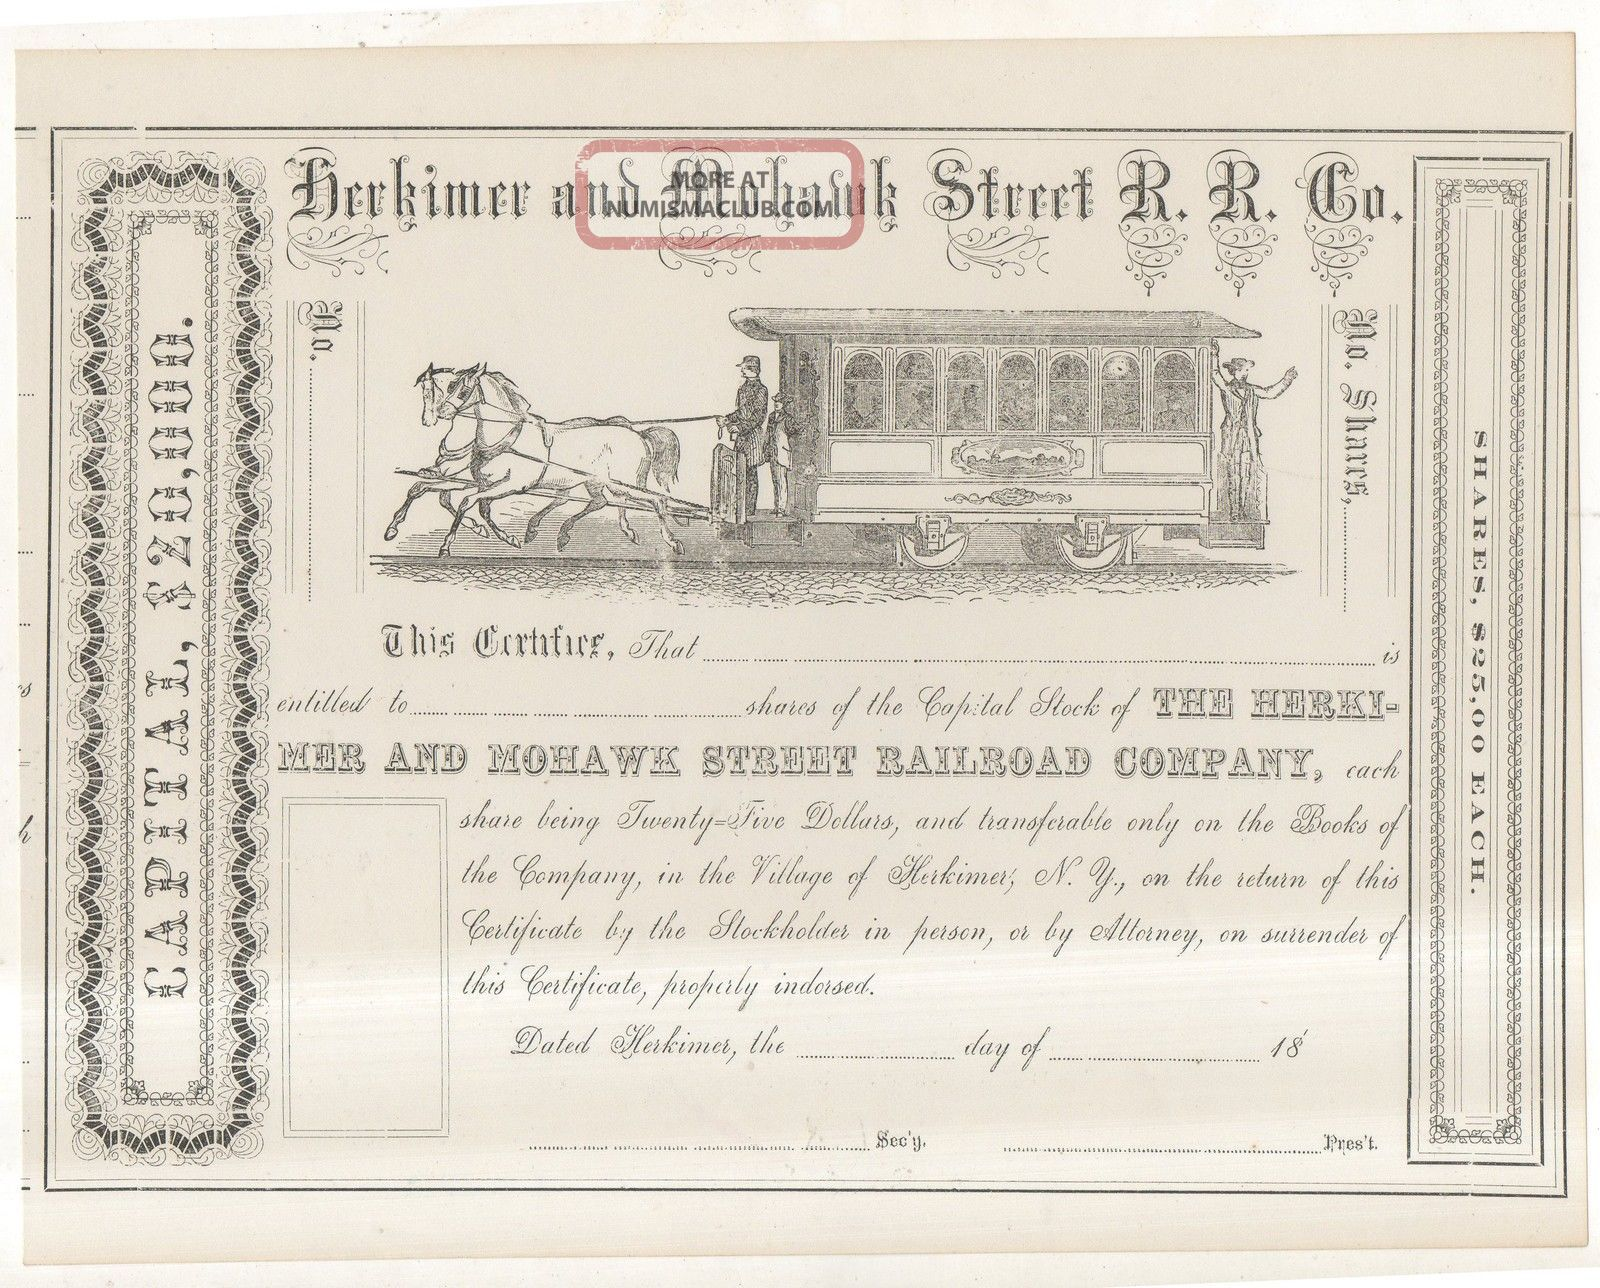 Herkimer & Mohawk Street Railroad Company Horse Car Railroad Stock Certificate 2 Transportation photo